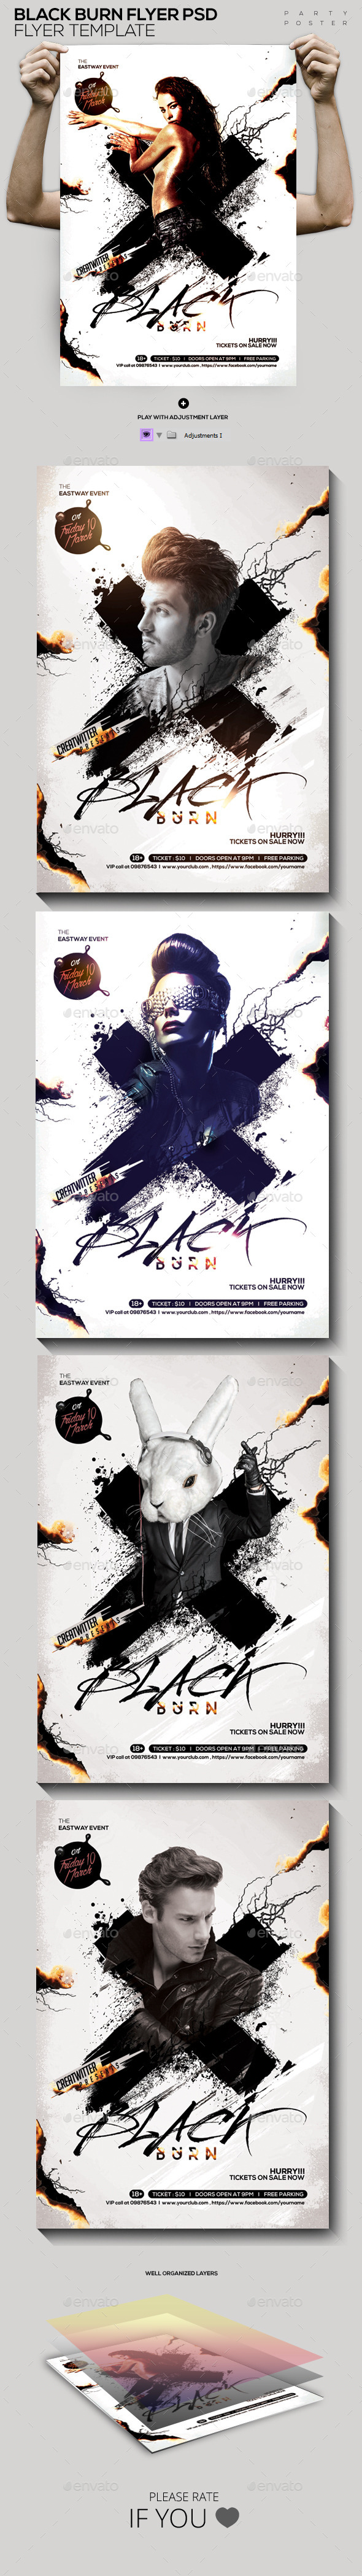 Black Burn Flyer/ Poster Template PSD - Clubs & Parties Events